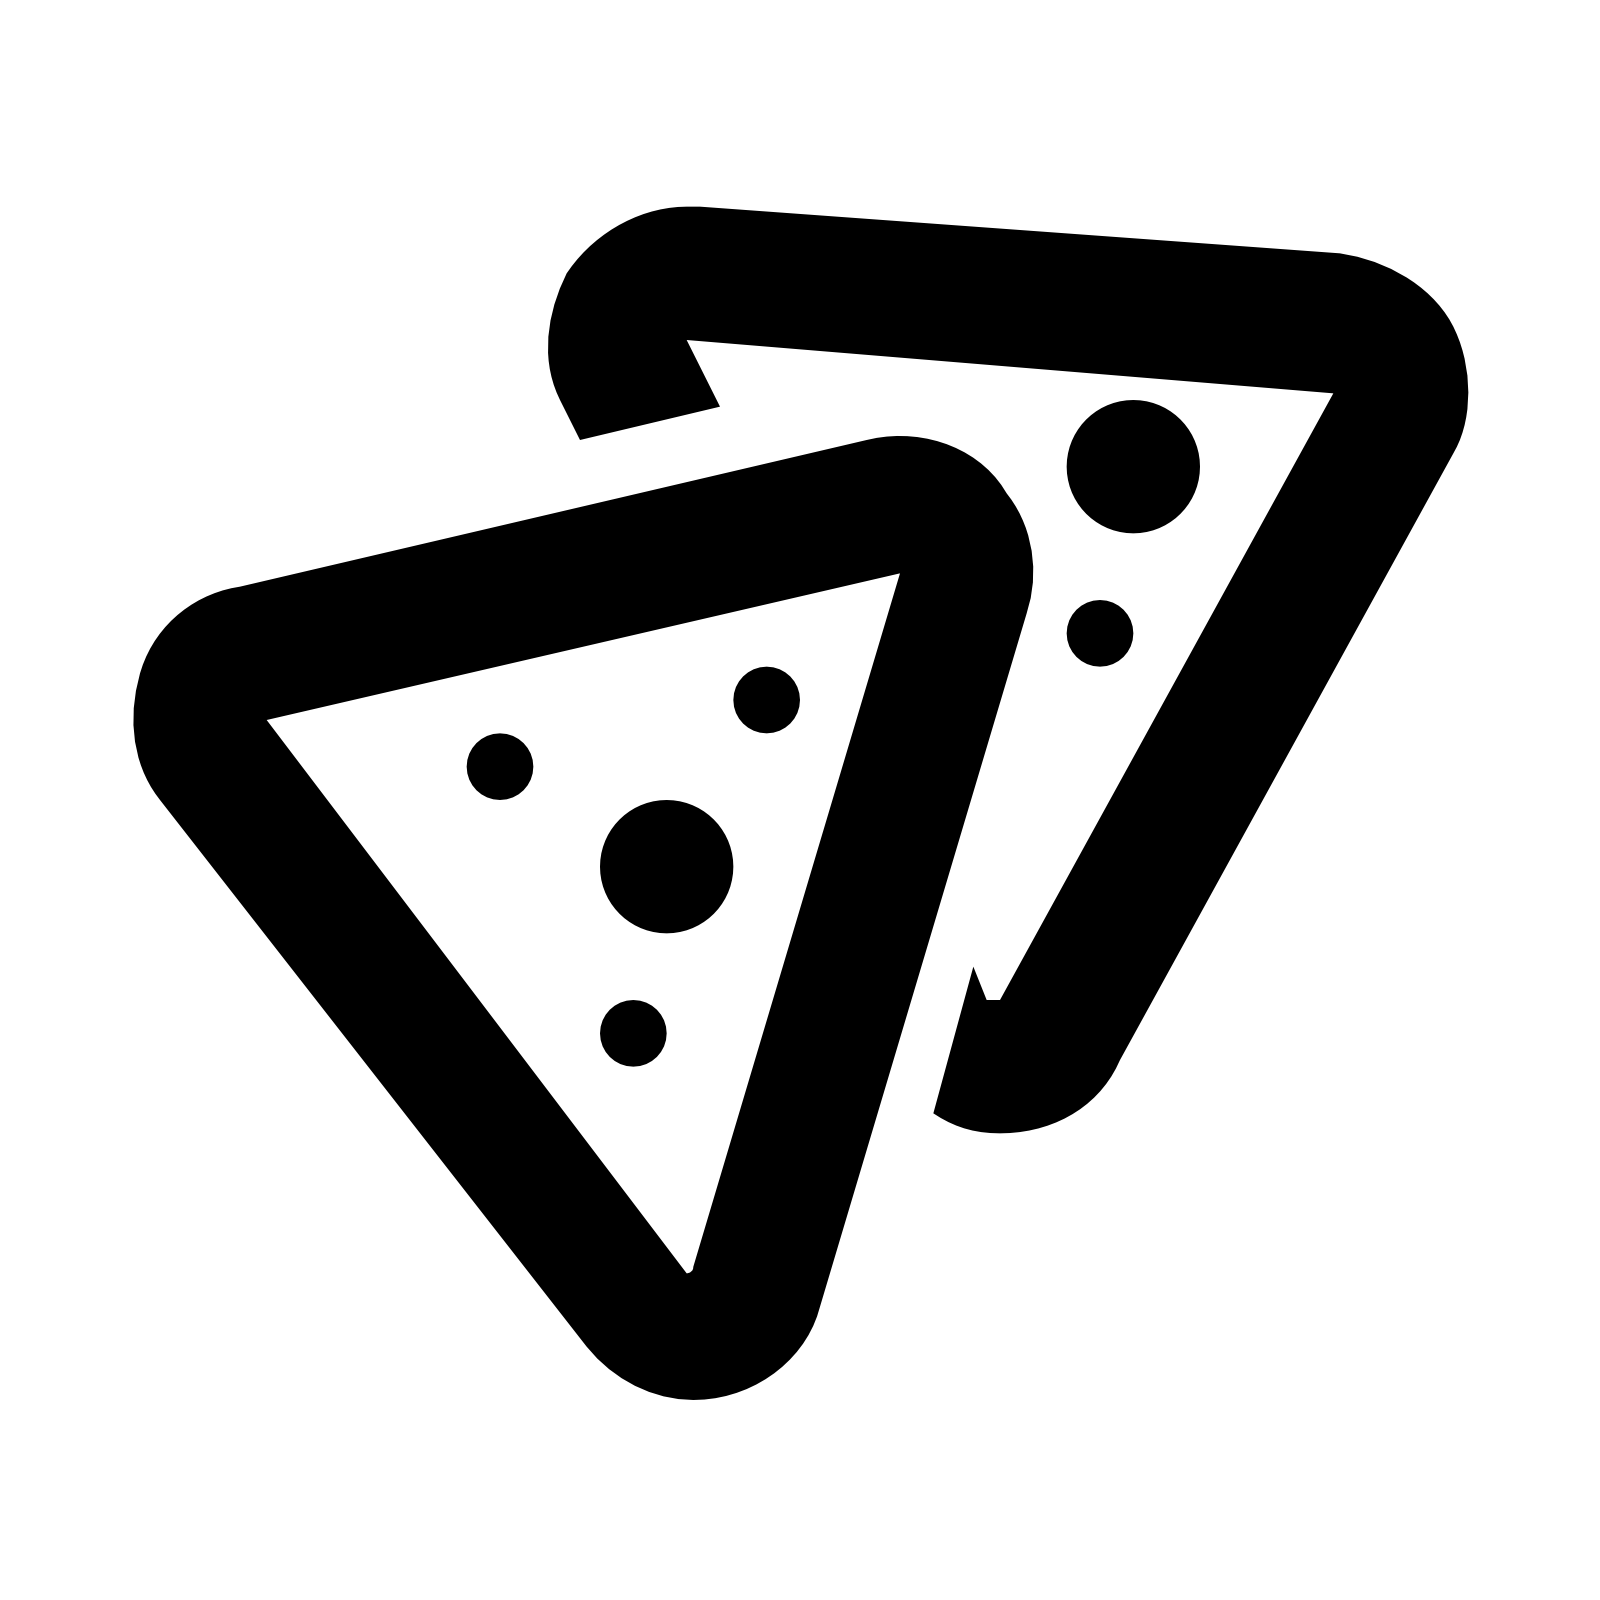 image black and white Nacho clipart melted cheese. Free png nachos and.